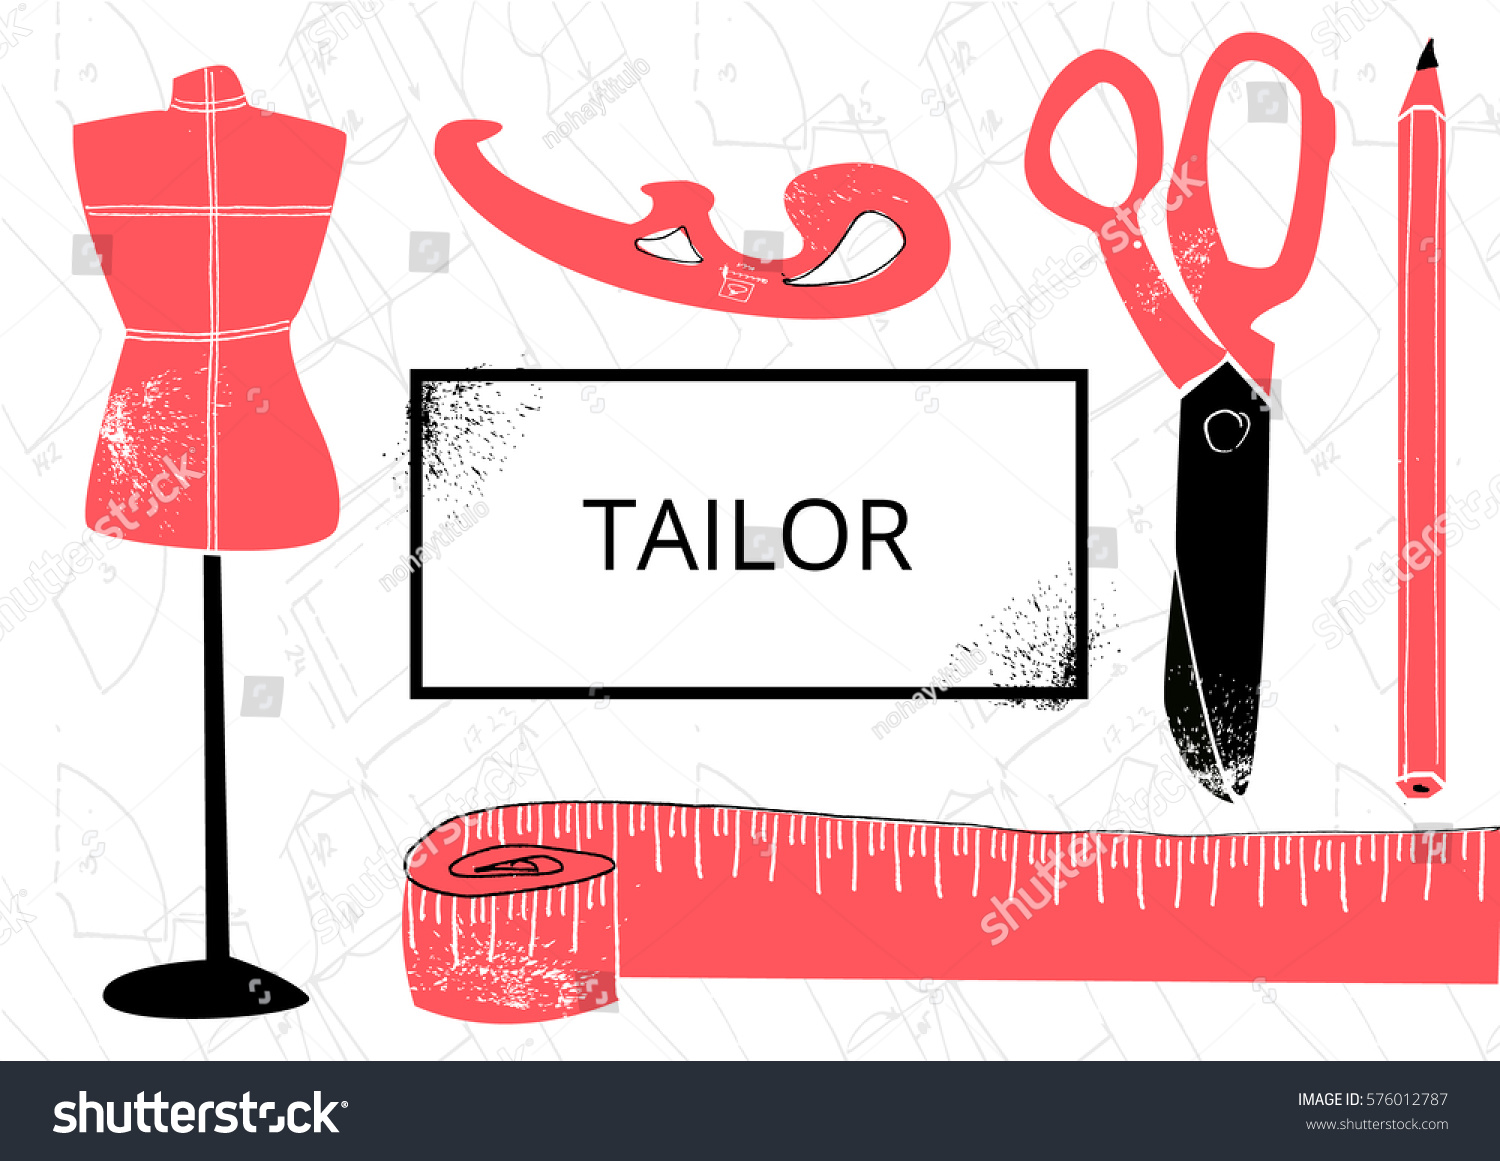 Tailor Business Card Vector Illustration EPS 10 Stock Vector ...